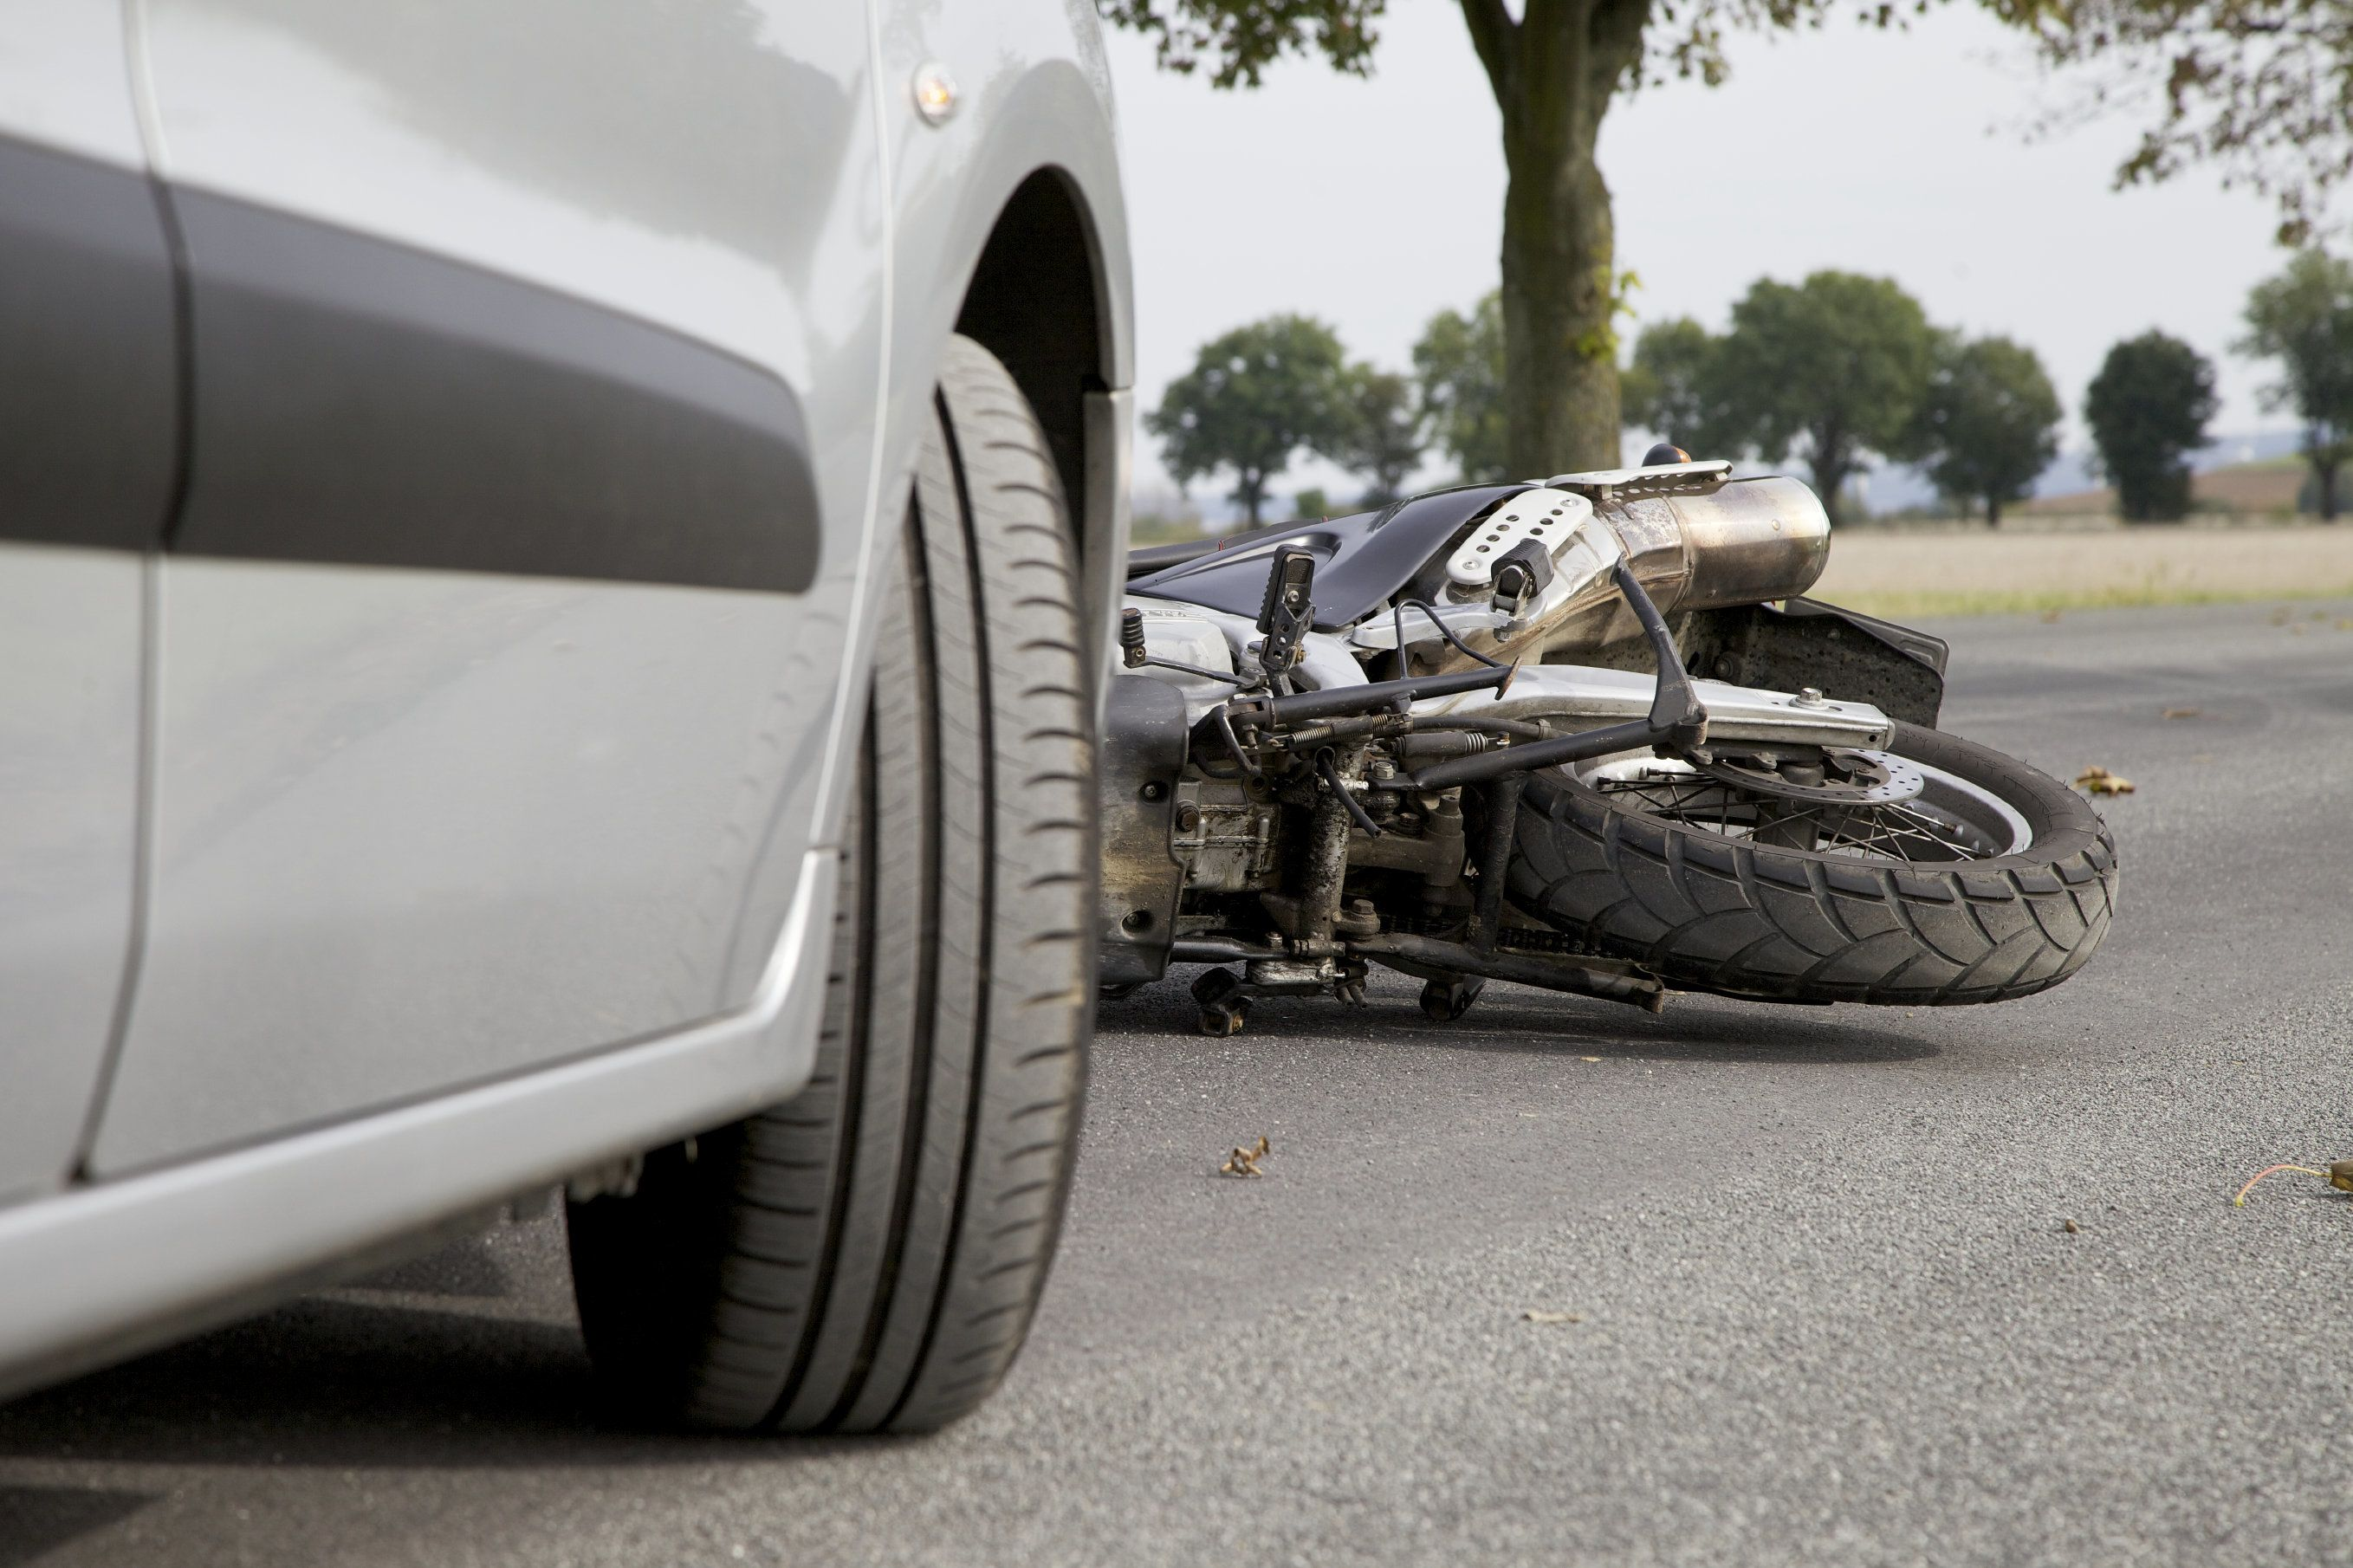 A motorcycle on the ground after an accident